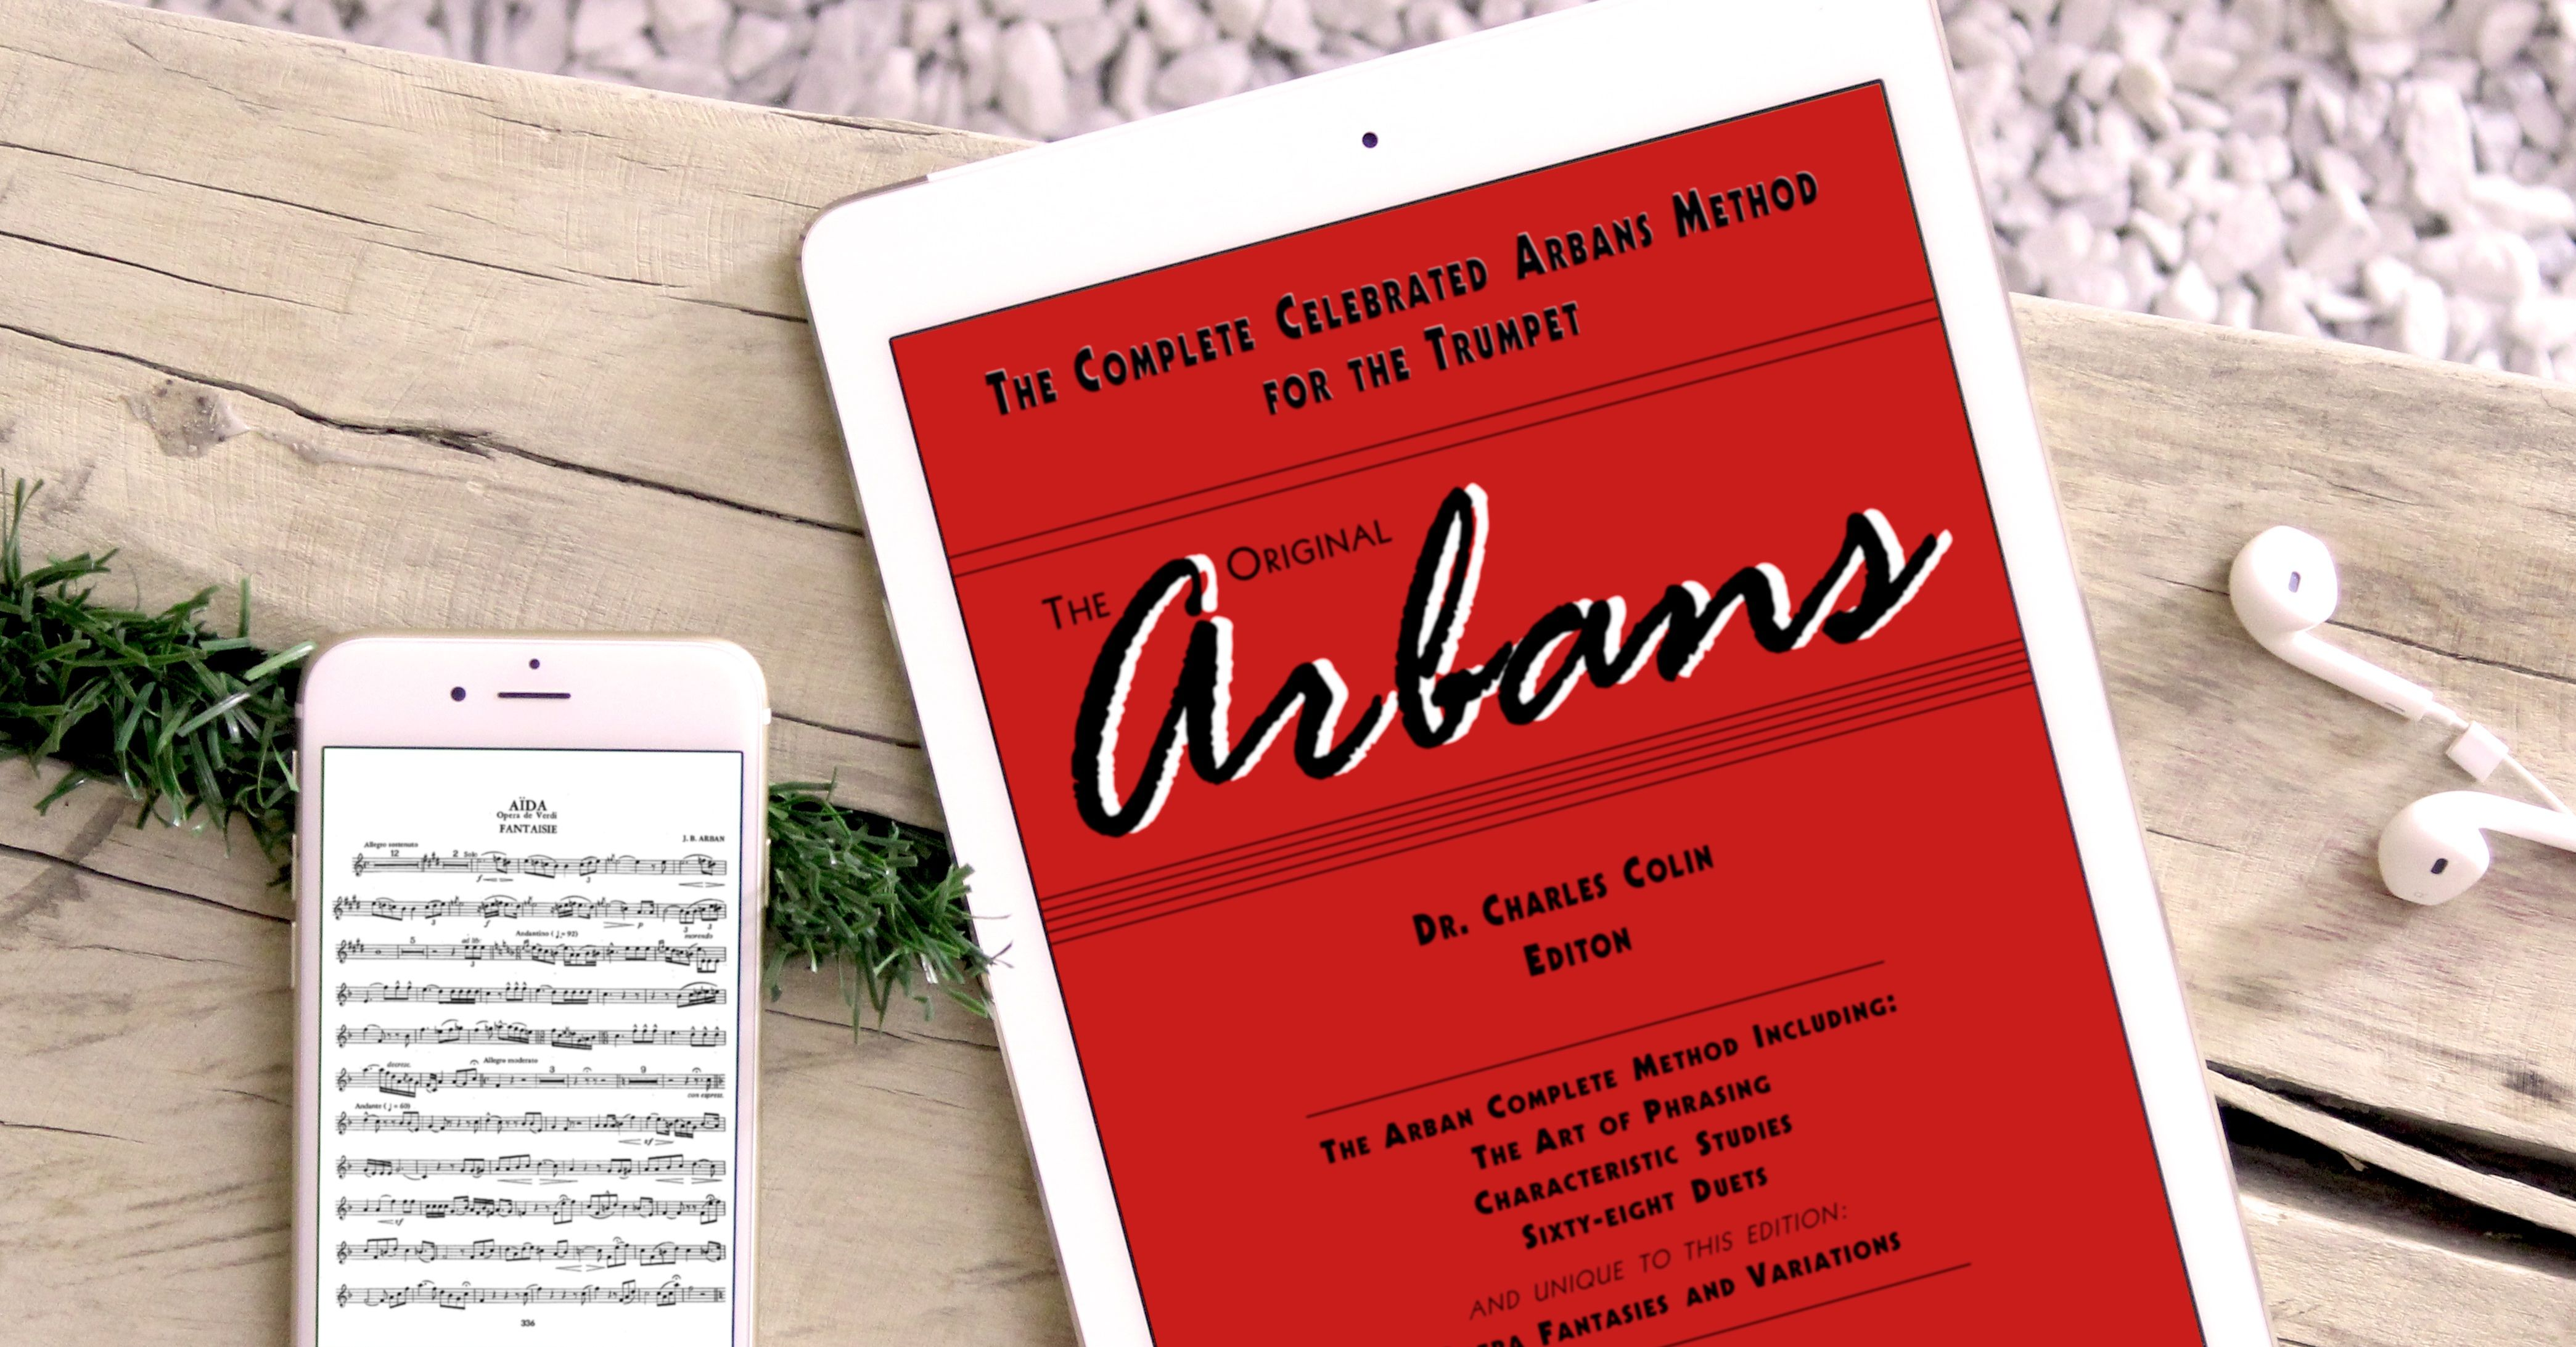 Did you know that the charles colin edited arban is the only did you know that the charles colin edited arban is the only edition to contain the fandeluxe Image collections